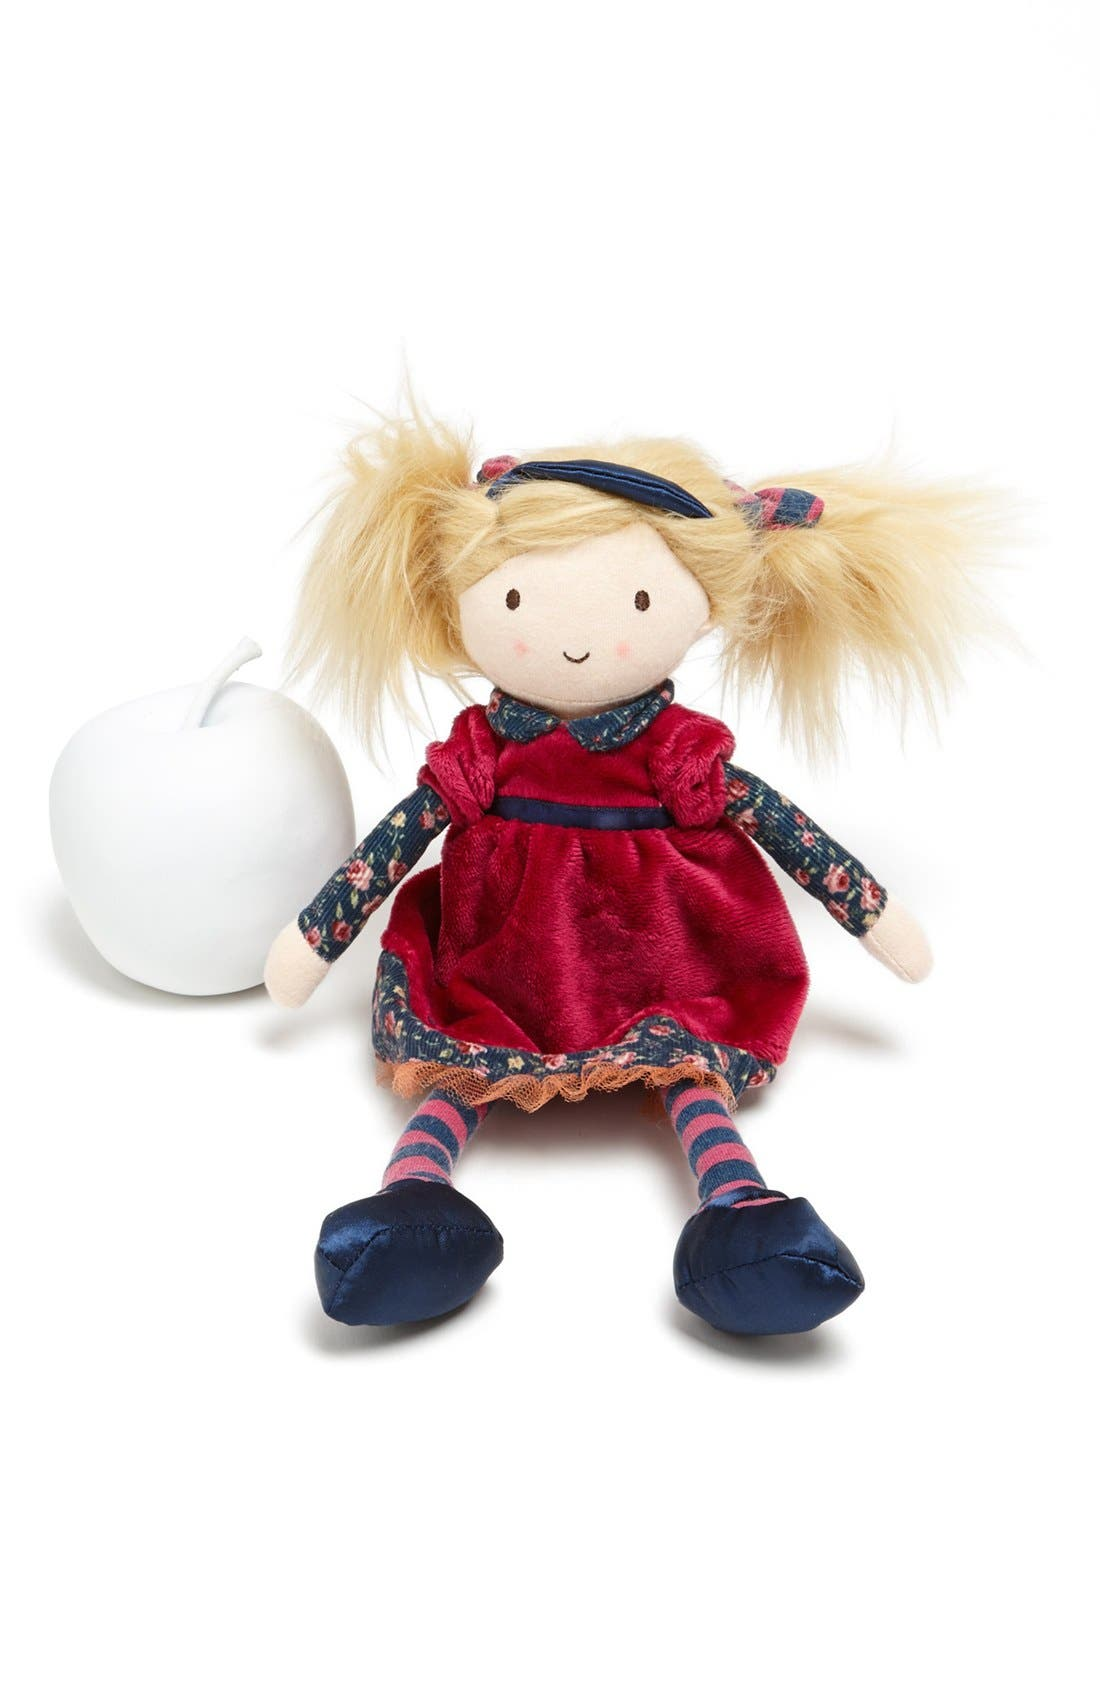 Alternate Image 1 Selected - Jellycat Fairy Tale Plush Doll